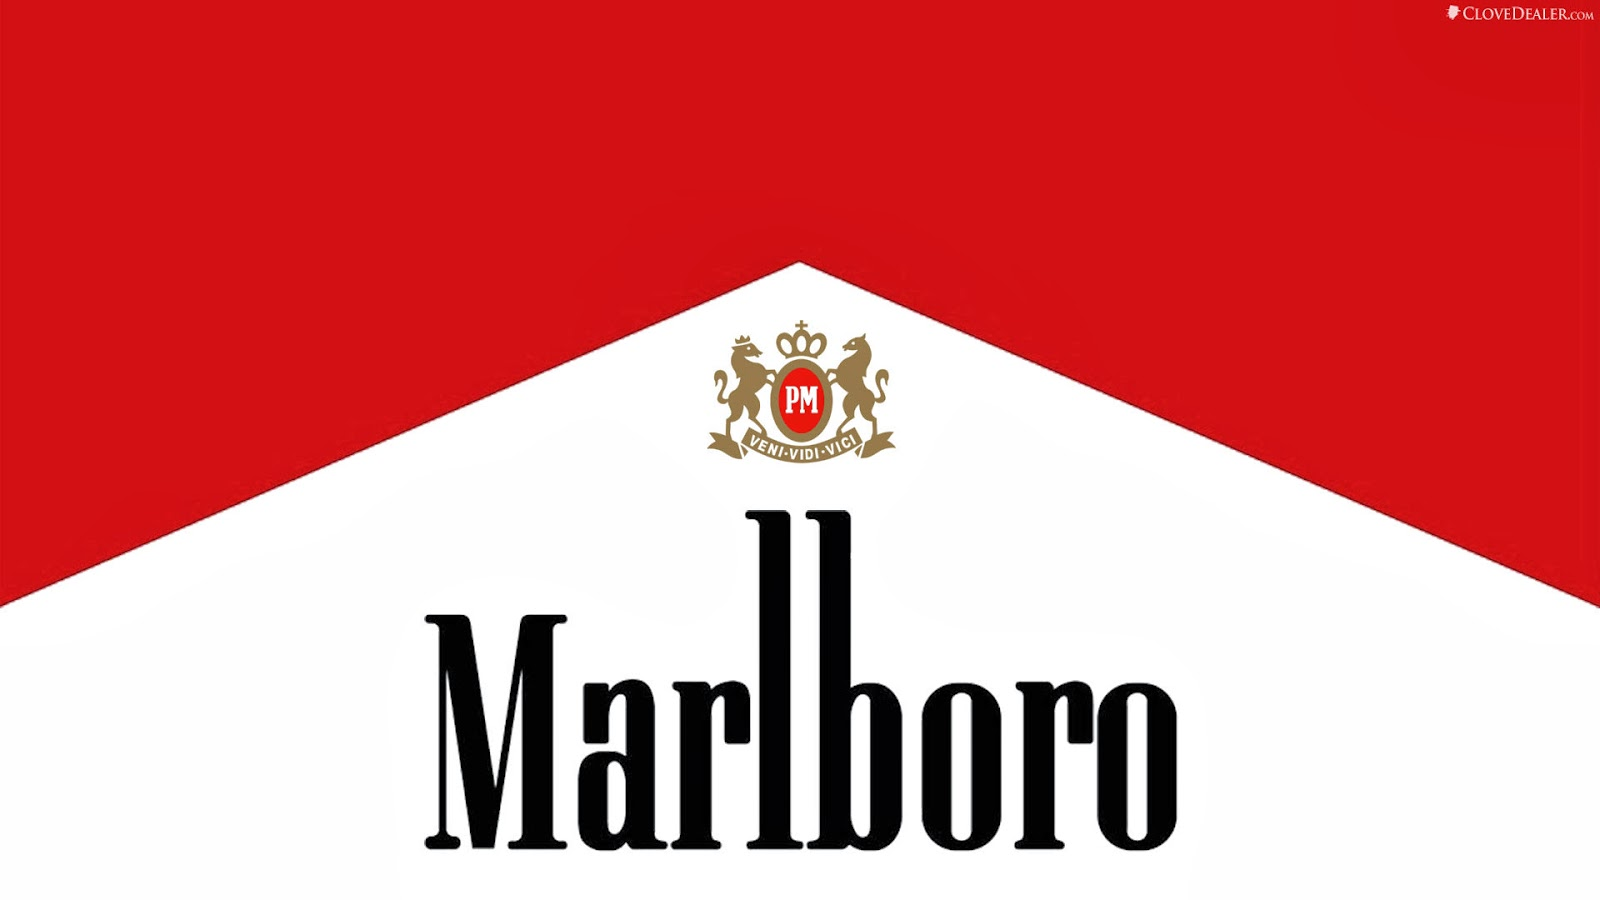 marlboro-logo-wallpaper-7